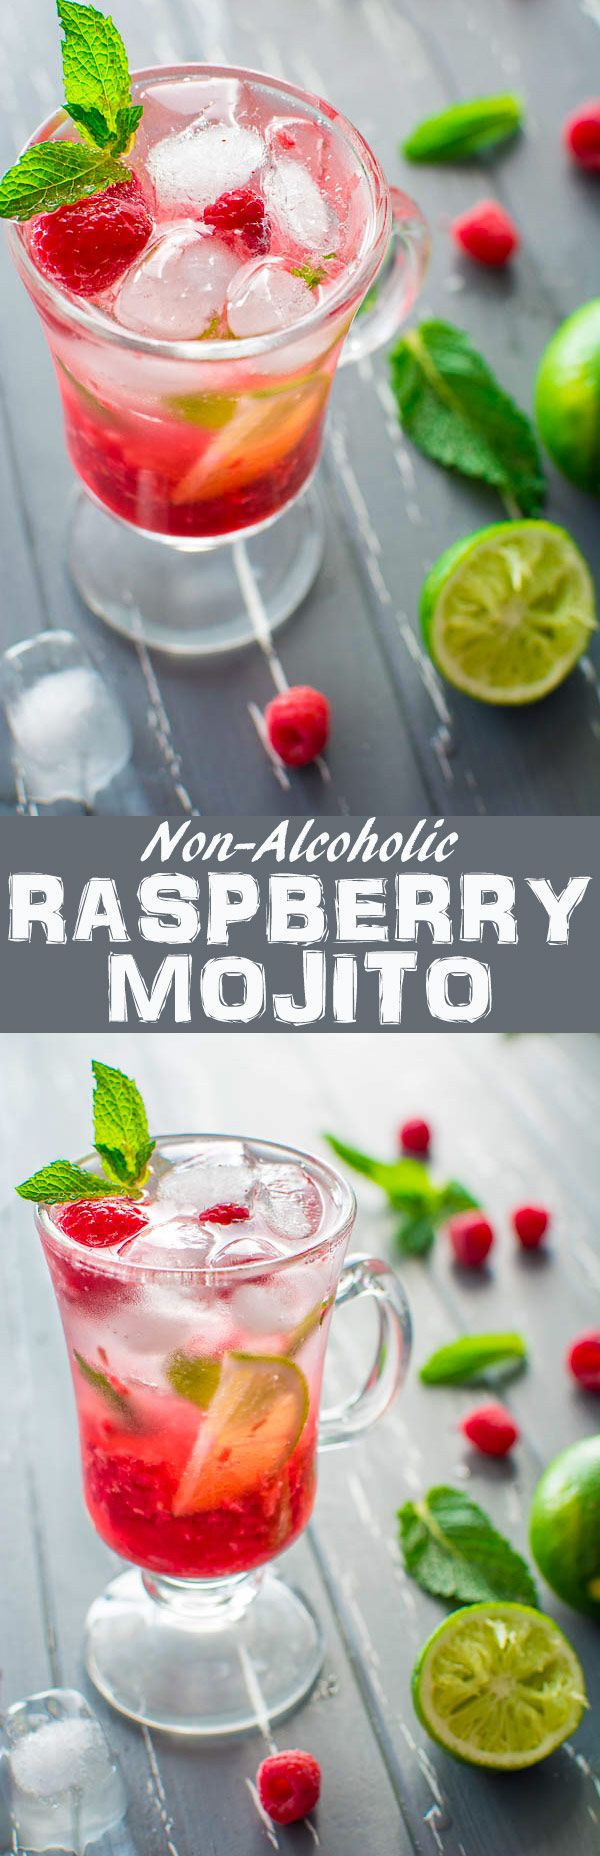 This refreshing Non-Alcoholic Raspberry Mojito is what you need on hot summer day. A combination of fresh raspberries, mint, lime juice, sparkling soda and a hint of sweetness will make you crave for more! ❤ COOKTORIA.COM